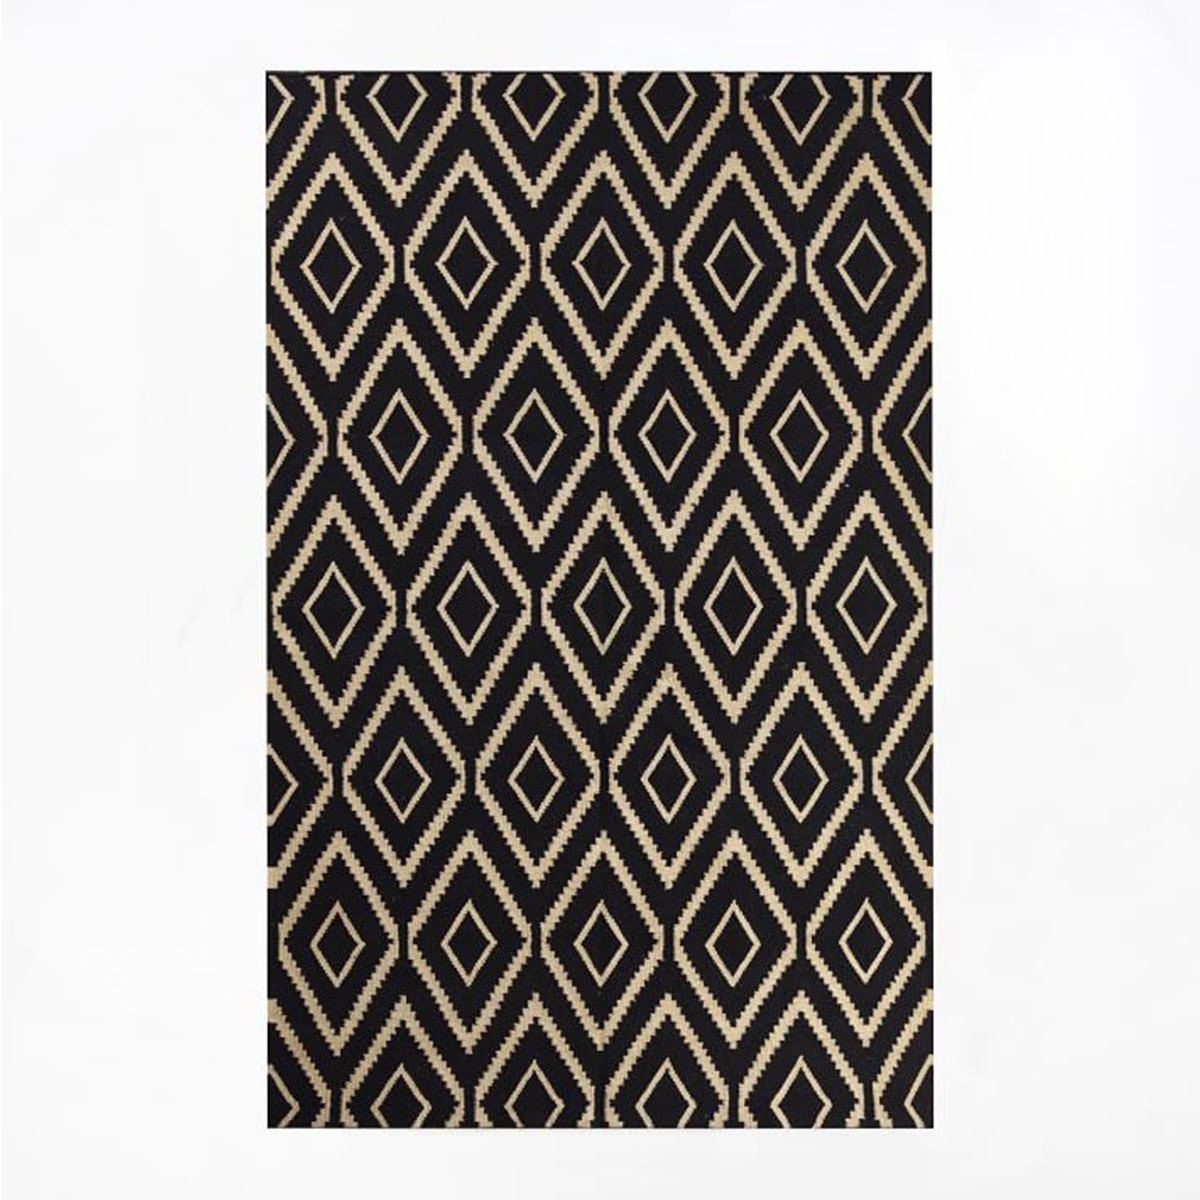 Art Deco-Inspired area rug features a bold black and gold pattern. photo